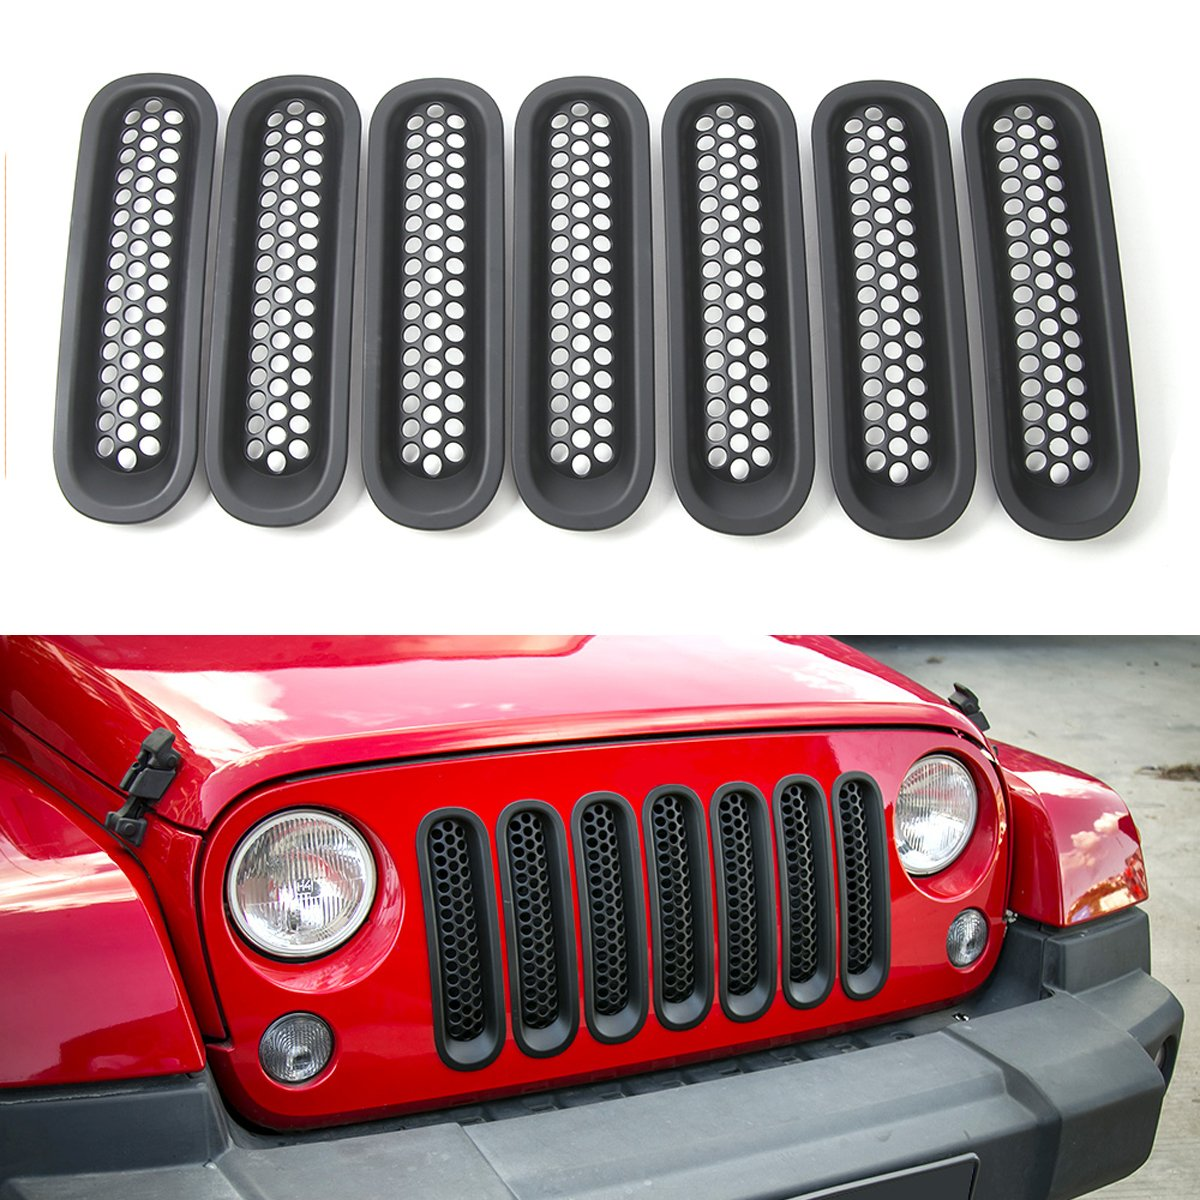 Black RT-TCZ Upgrade Version Clip-on Grille Front Mesh Grille Inserts for Jeep Wrangler 2007-2015